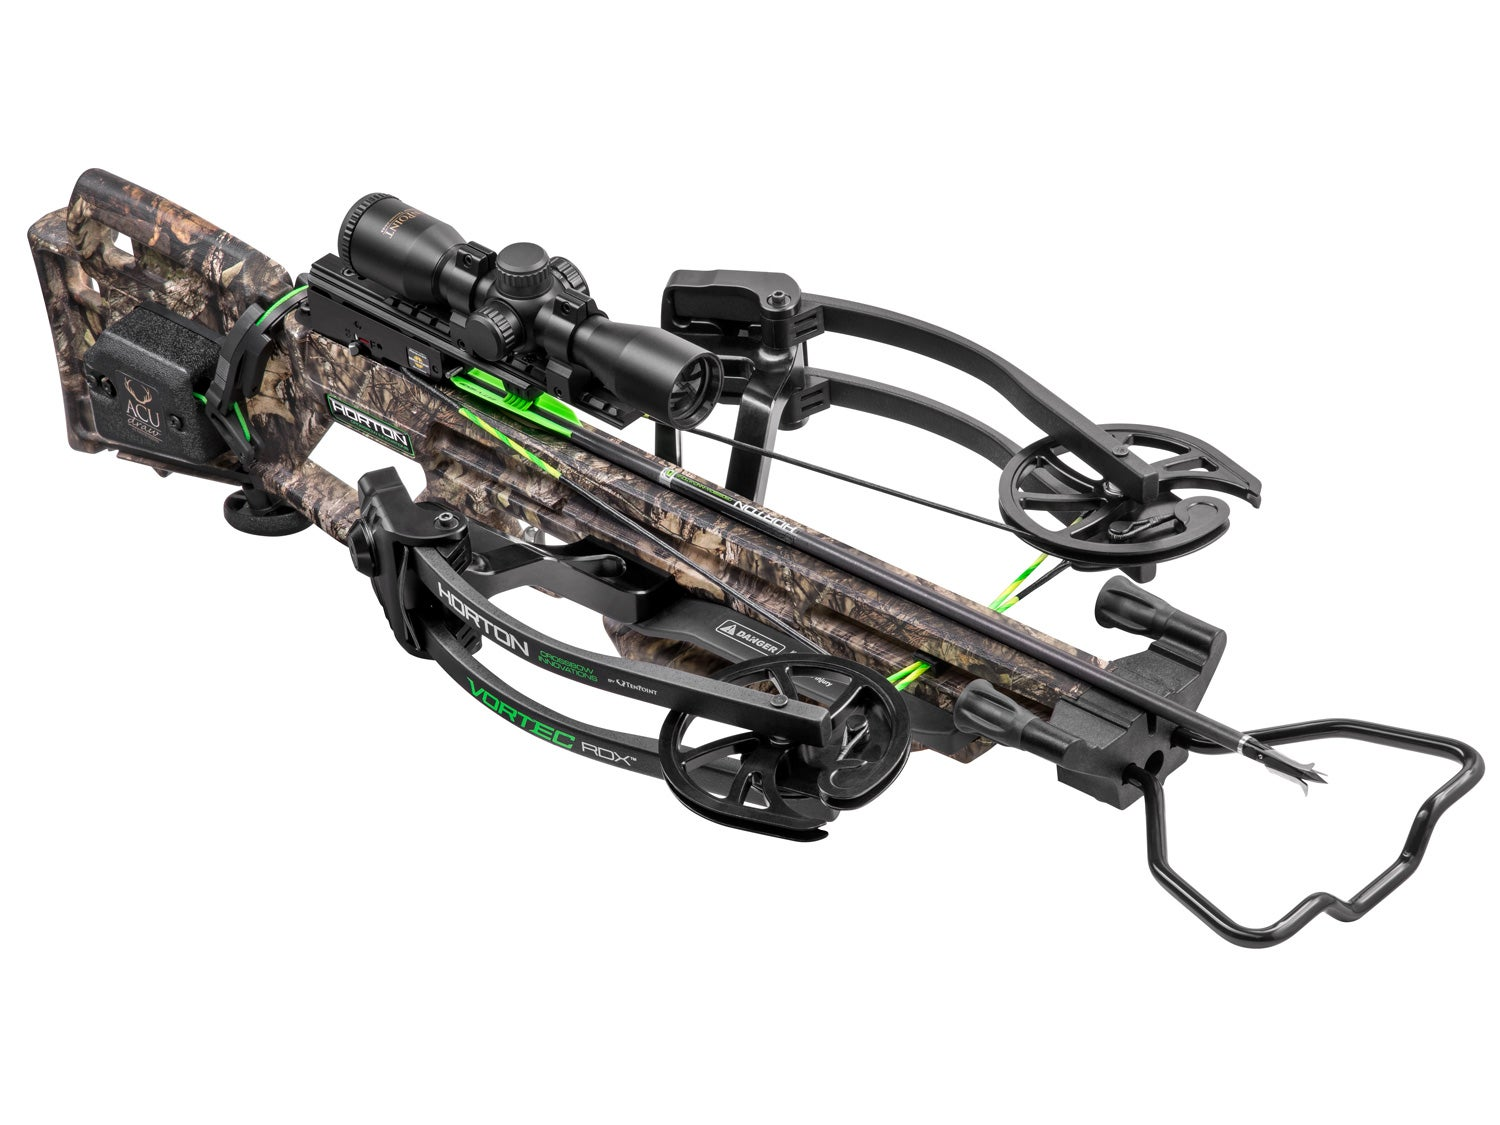 Hottest New Crossbows for 2017